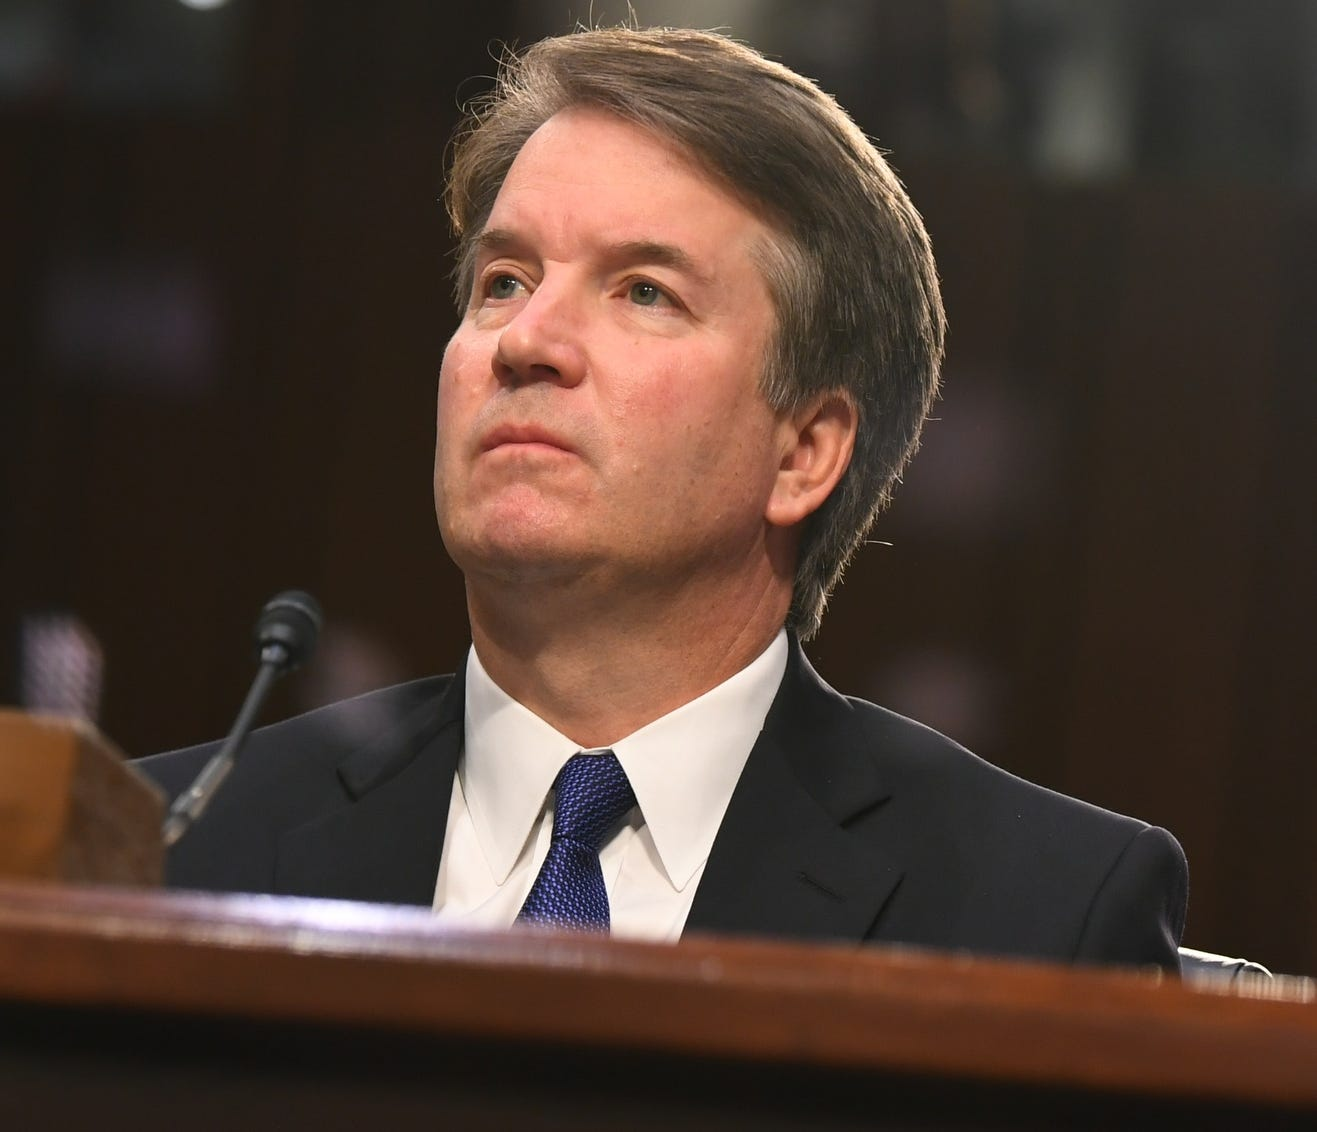 9/4/18 10:30:56 AM -- Washington, DC, U.S.A  -- Supreme Court Associate Justice nominee Brett Kavanaugh appears before the Senate Judiciary Committee during his confirmation hearing on Sept. 4, 2018 in Washington. Kavanaugh was nominated by President Donald Trump to replace Justice Anthony Kennedy,who retired from the Supreme Court in July.  --    Photo by Jack Gruber, USA TODAY Staff ORG XMIT:  JG 137433 Kavanaugh Confir 9/4/2018 (Via OlyDrop)